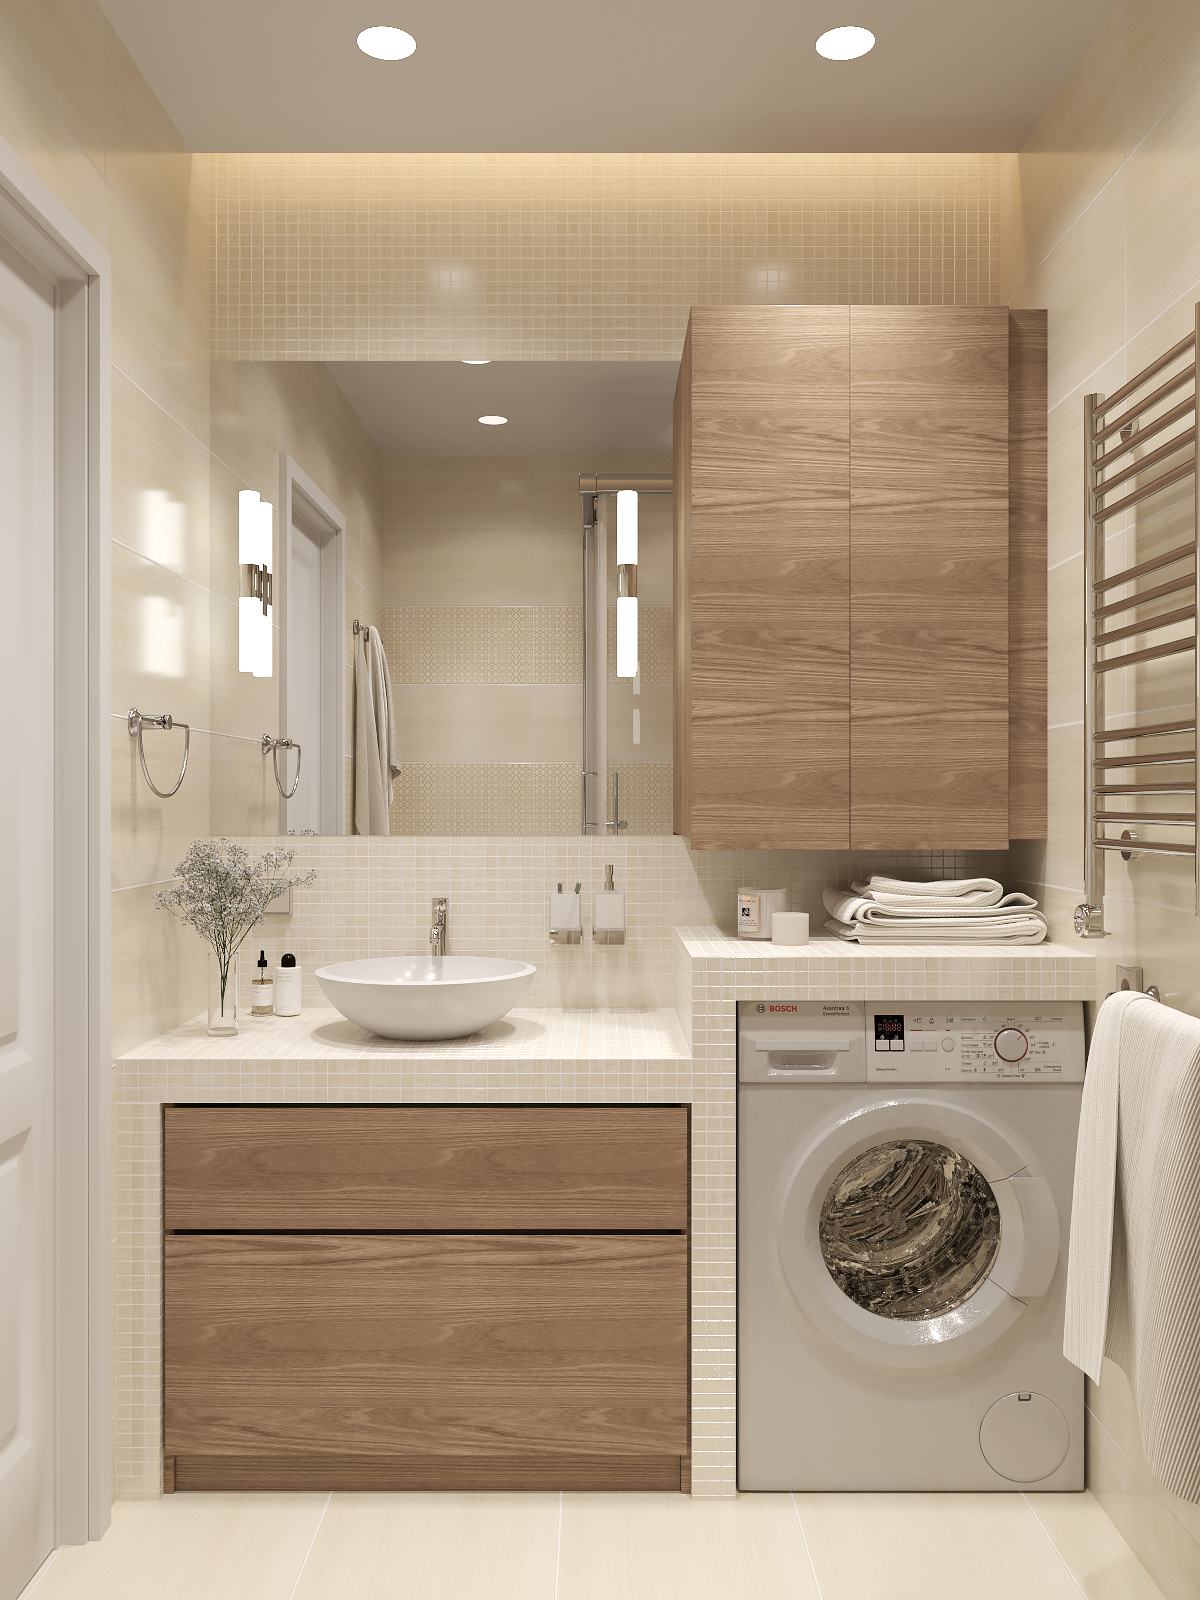 Very Neat Bathroom Layout With The Washing Machine. Washing Machine Is  Exposed But Neatly Tucked